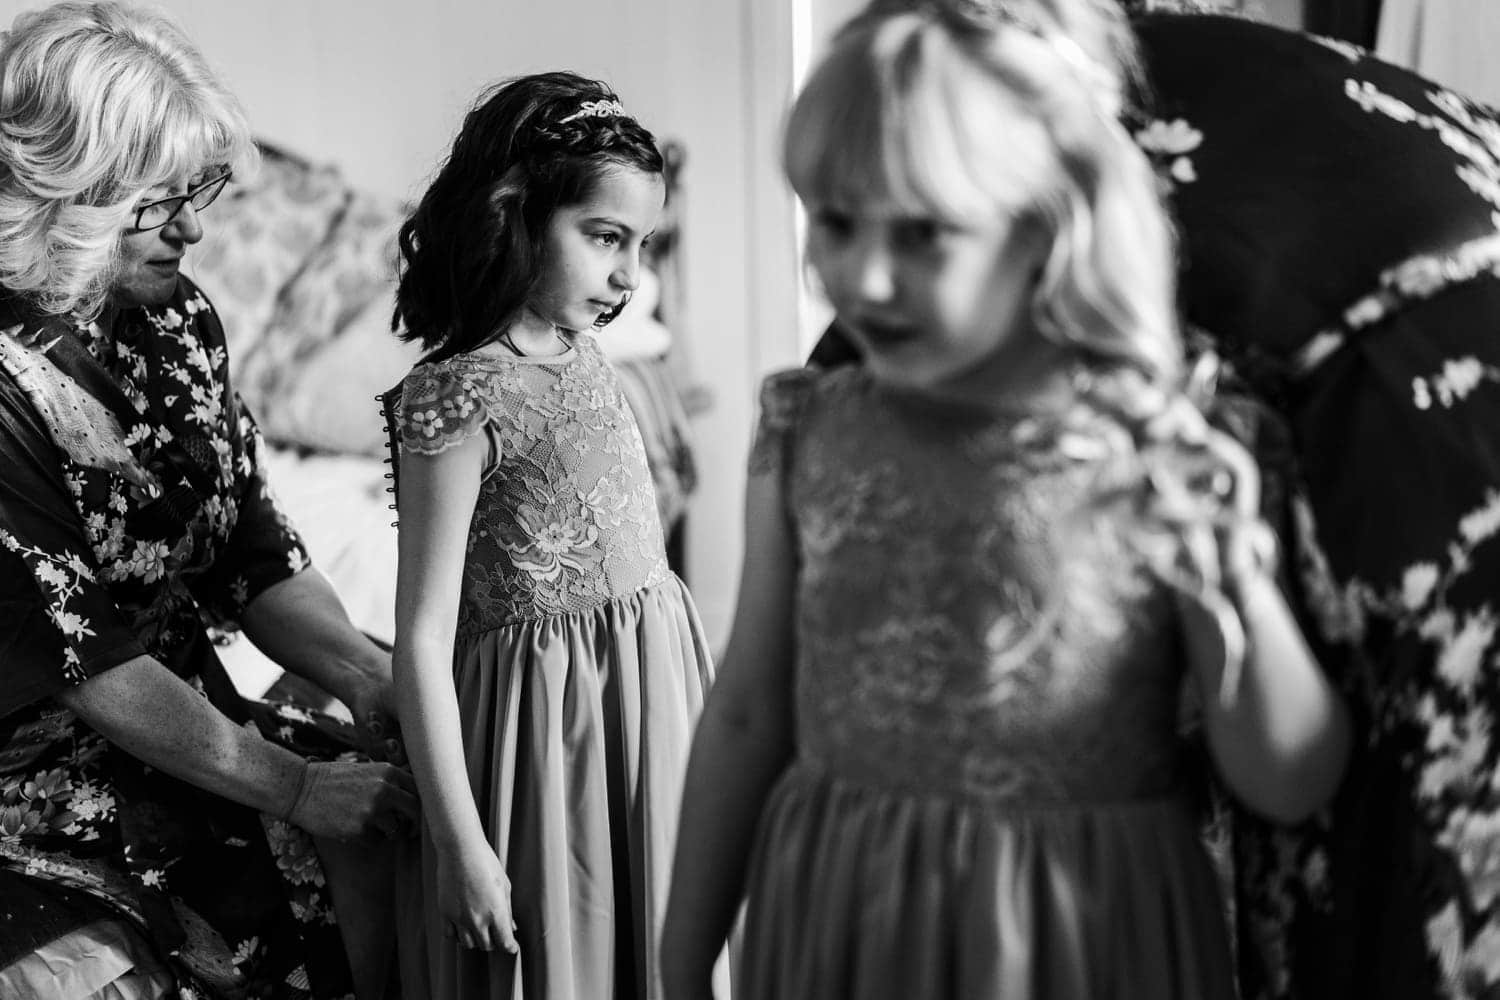 Flower girls get ready at Caer Llan wedding in South Wales